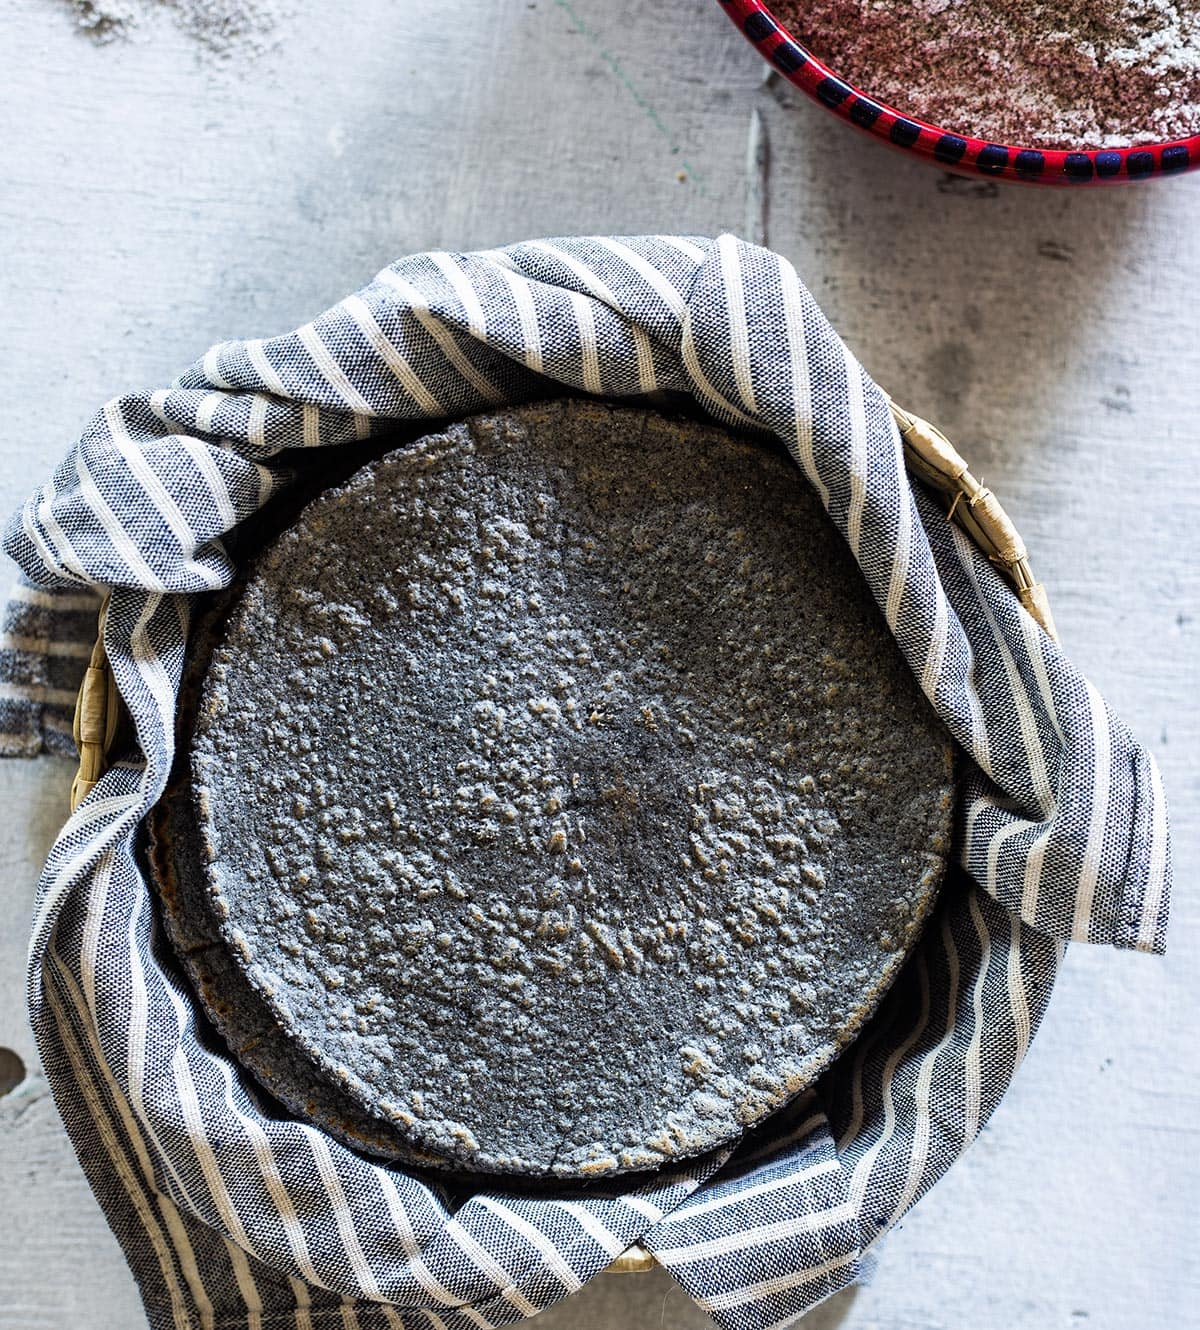 Blue corn tortillas wrapped in a kitchen towel and placed inside a small basket.